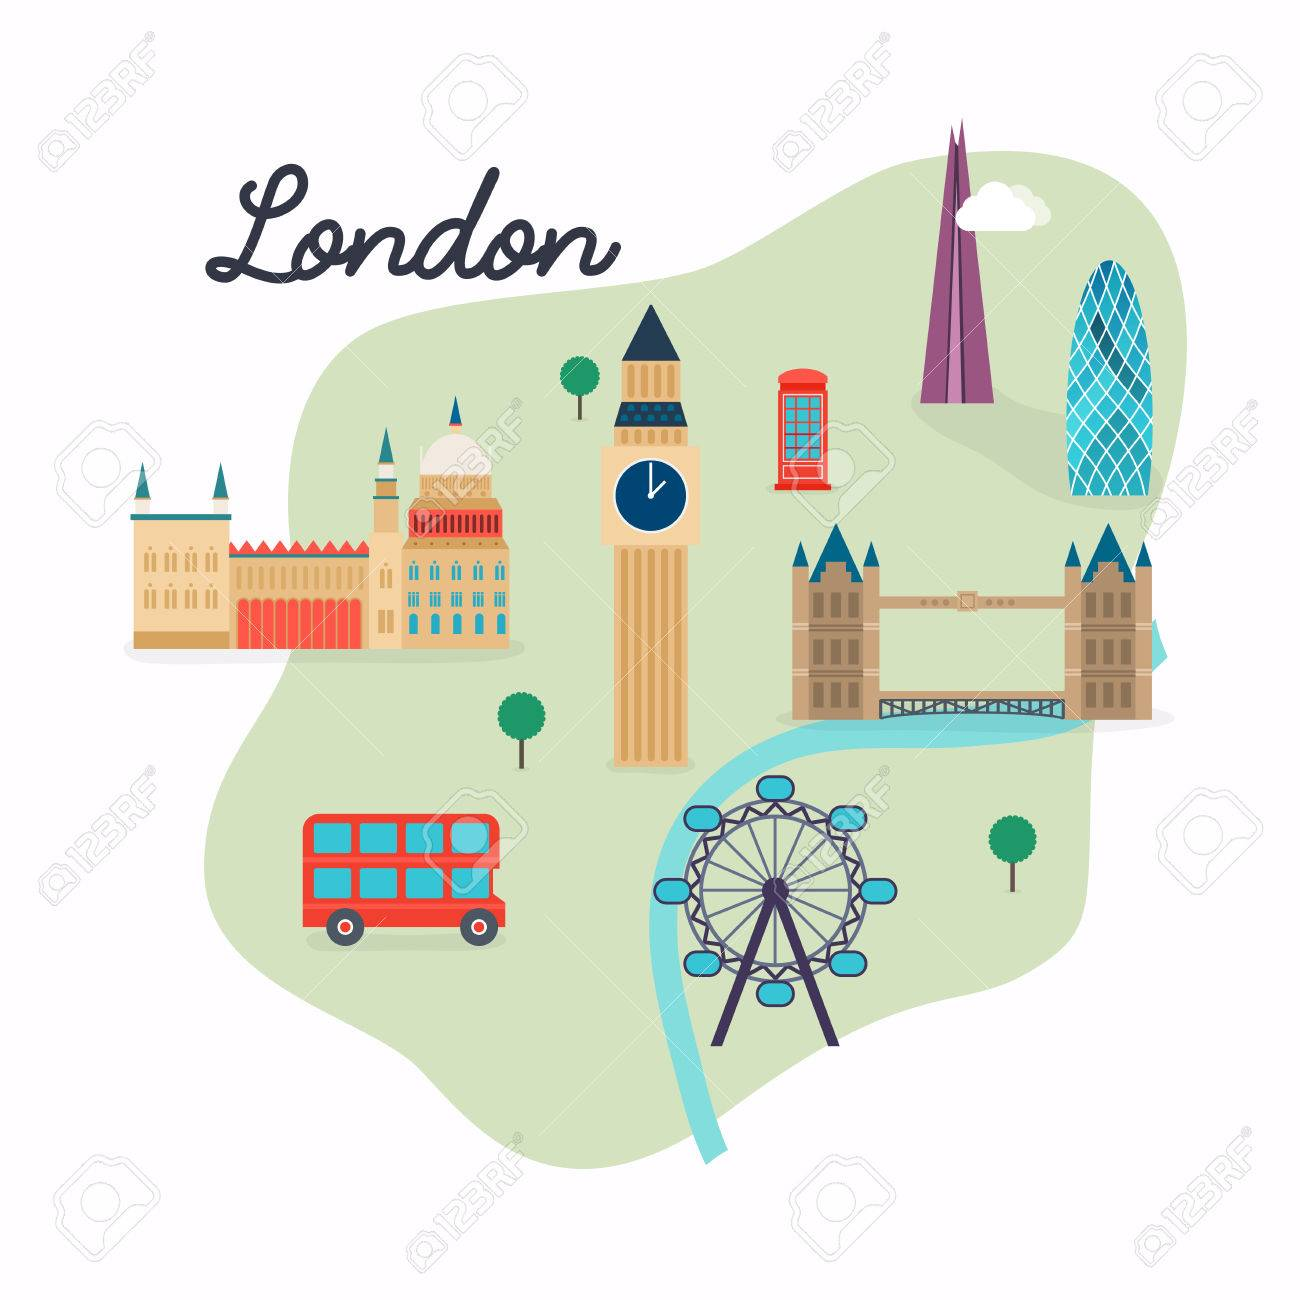 Map Of London With Famous Landmarks.London Travel Map And Vector Landscape Of Buildings And Famous